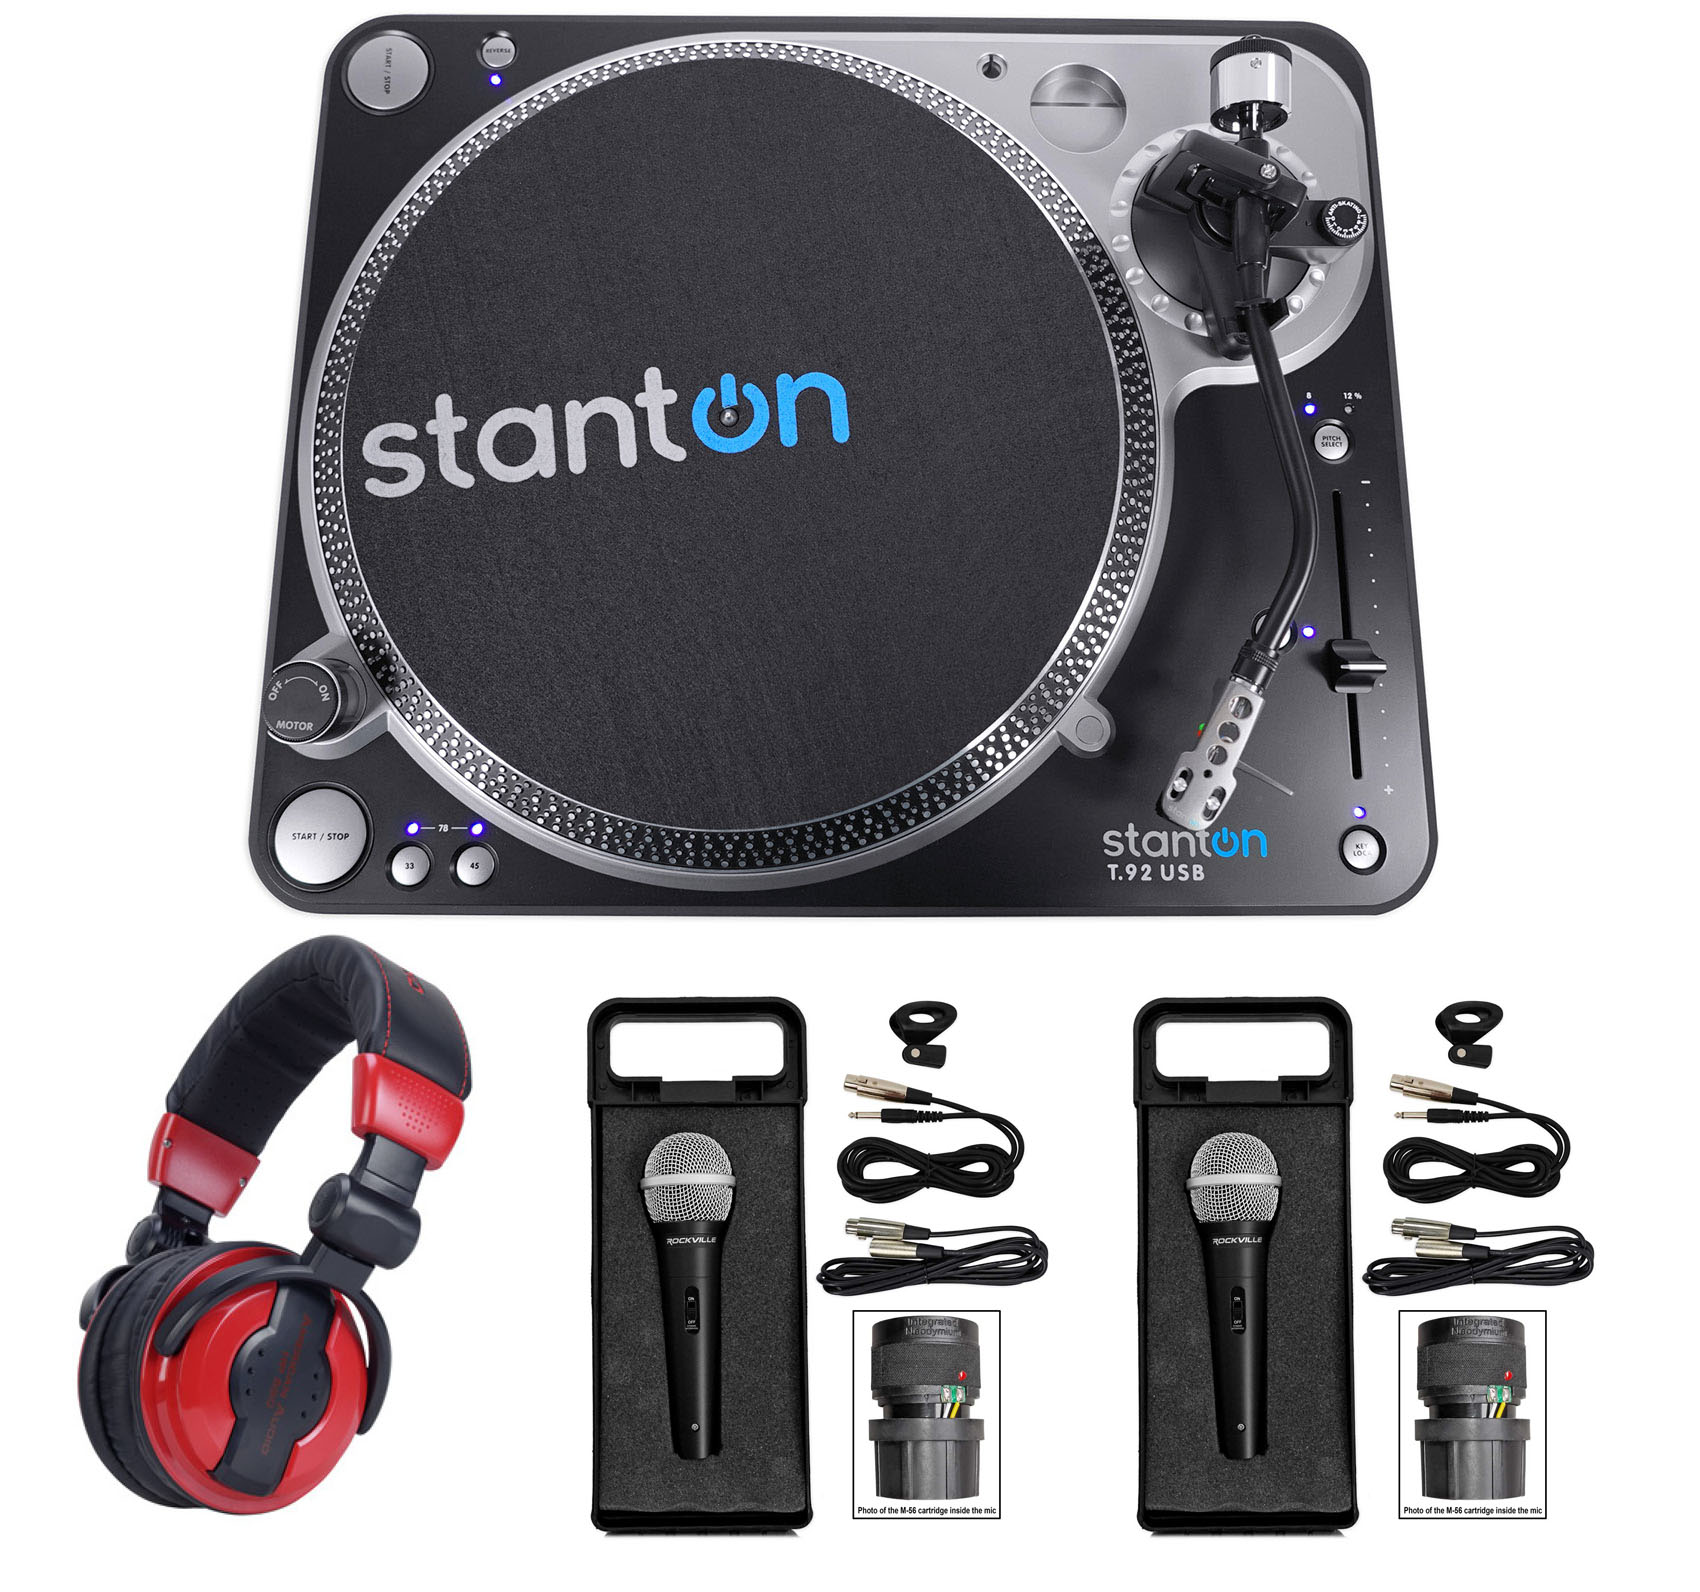 Stanton T.92 M2 USB Direct-Drive S-arm USB DJ Turntable+Headphones+2 Microphones